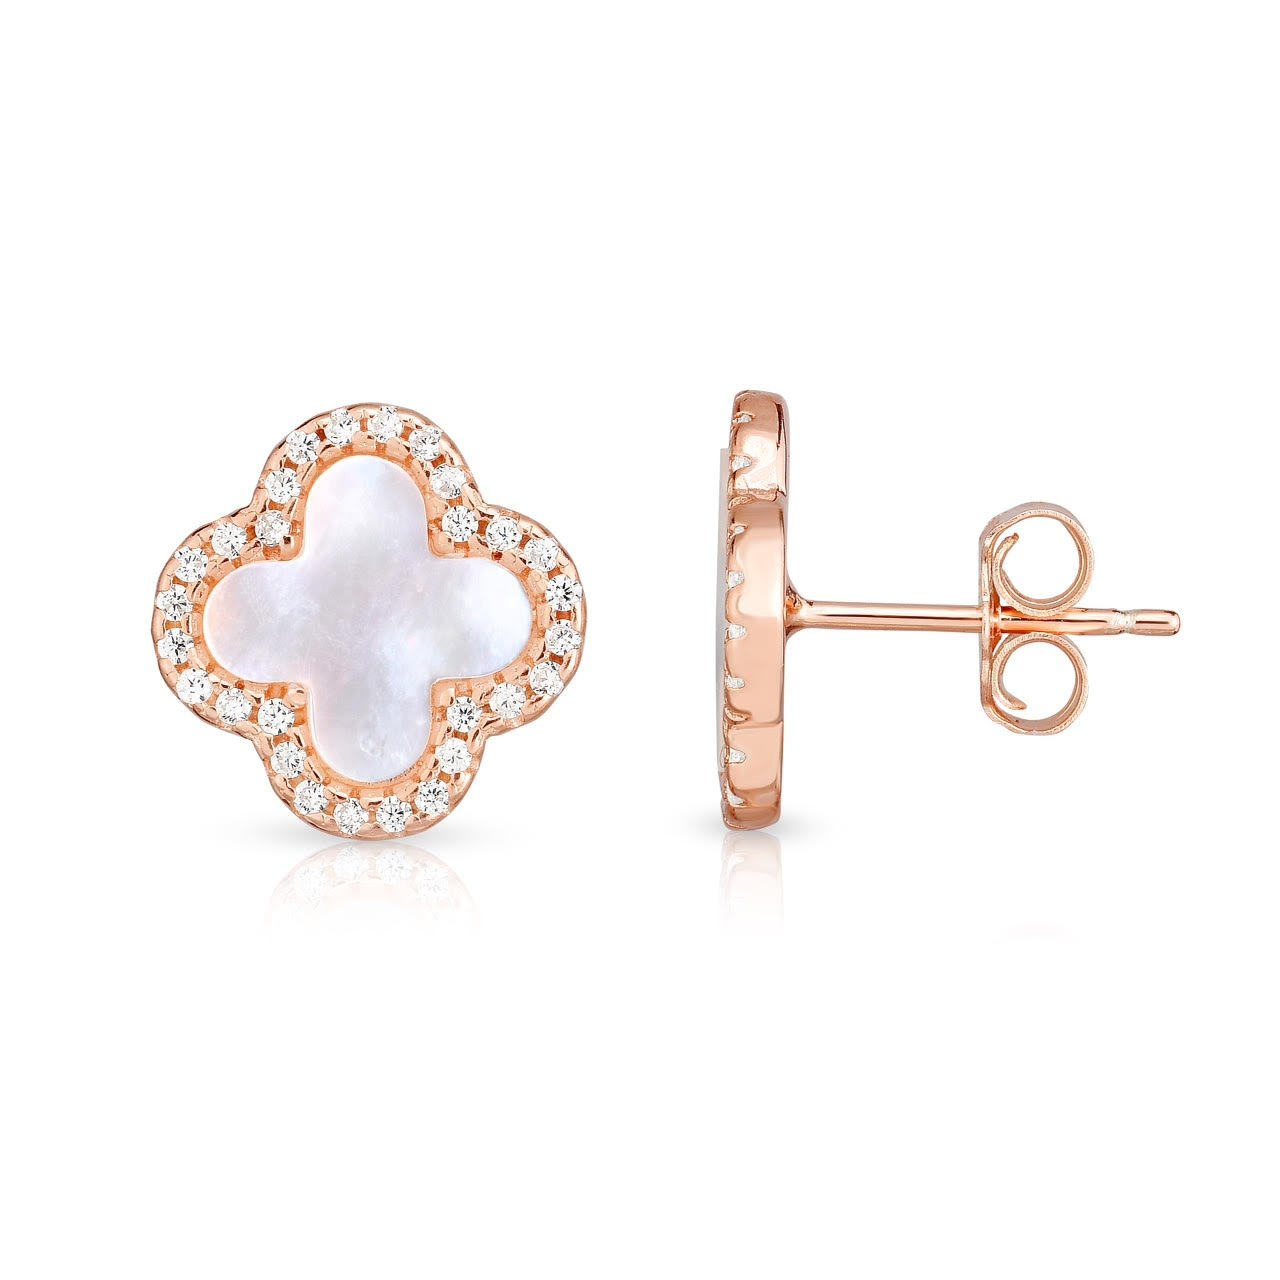 646c3d460 Amazon.com: Sterling Silver Mother Of Pearl And Cubic Zirconia Four Leaf  Clover Post Earrings. (14K Rose Gold Plated): Jewelry